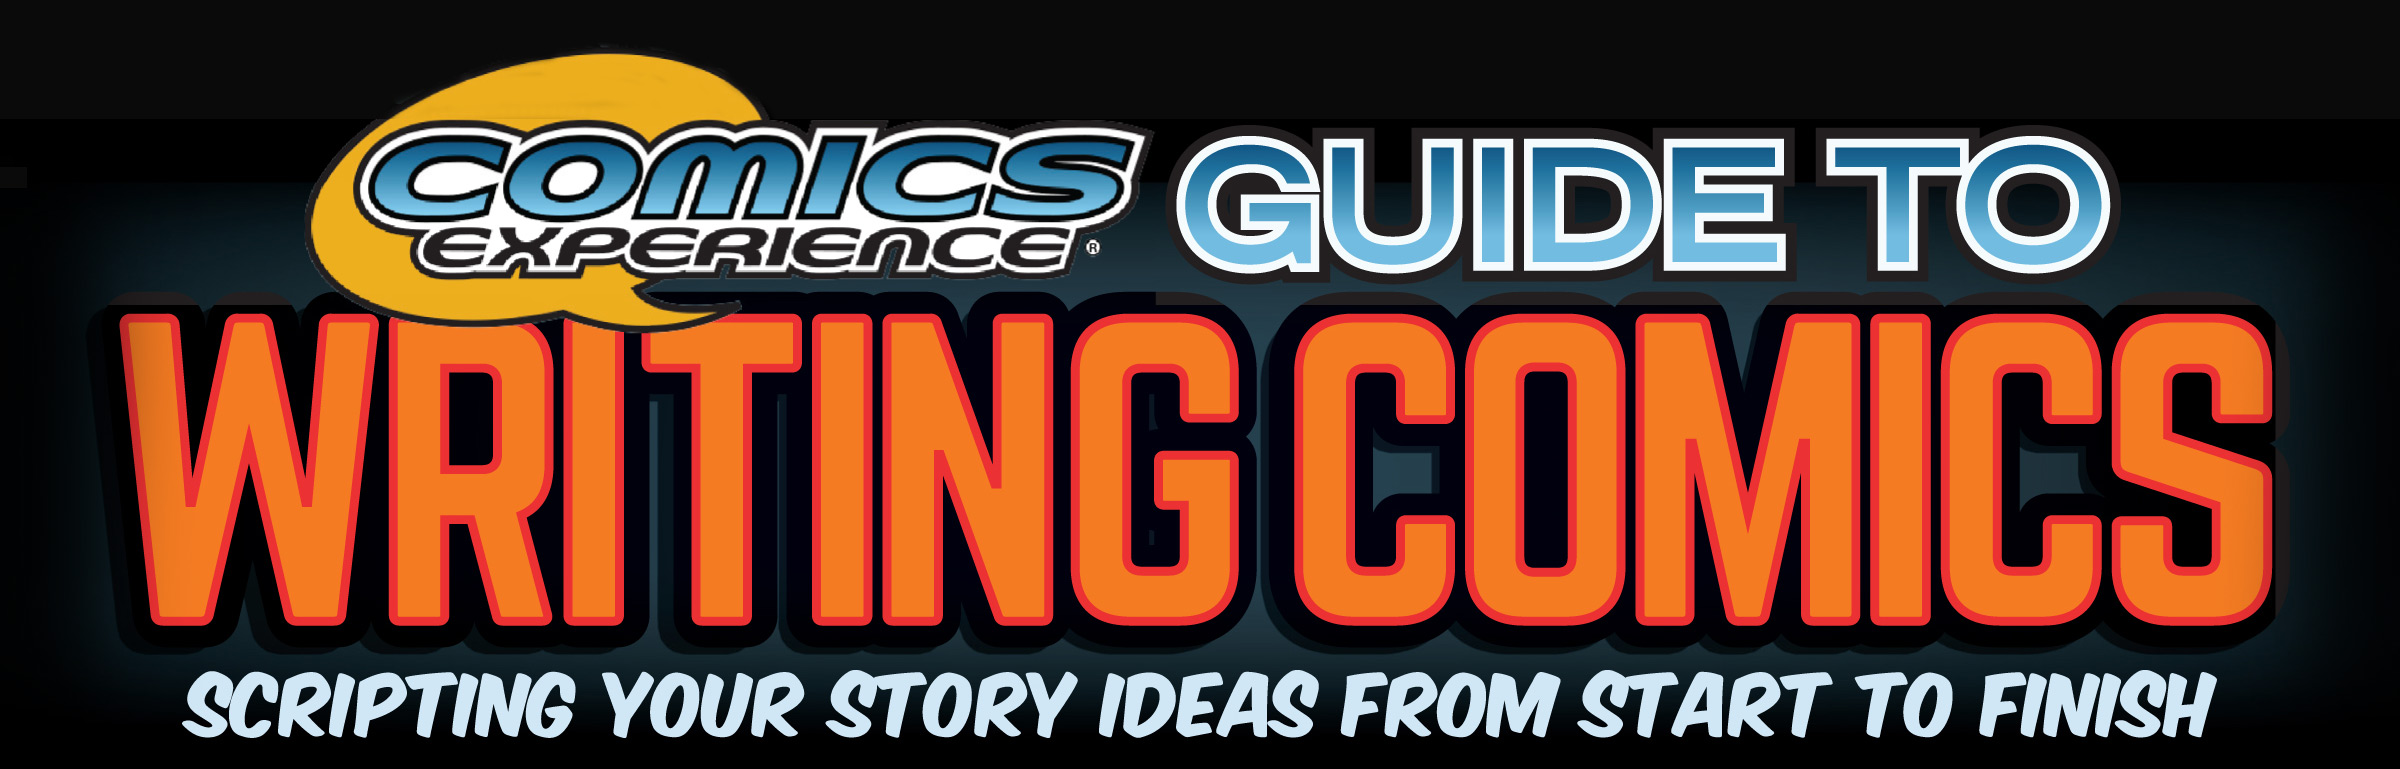 The Comics Experience Guide to Writing Comics